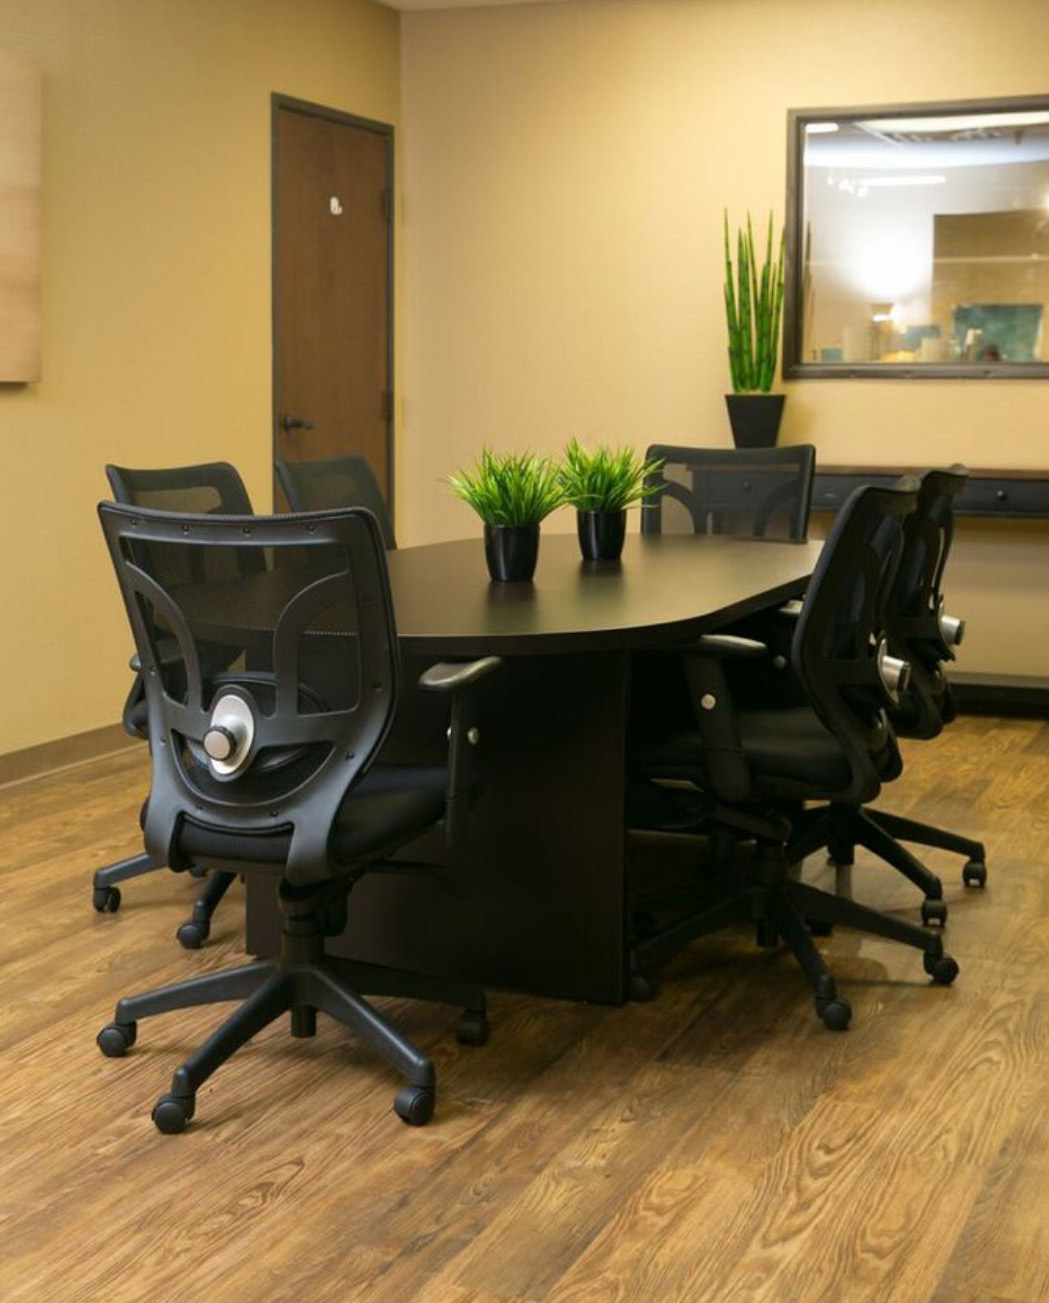 Office furniture rental in dfw austin charter furniture rental Furniture in rental home